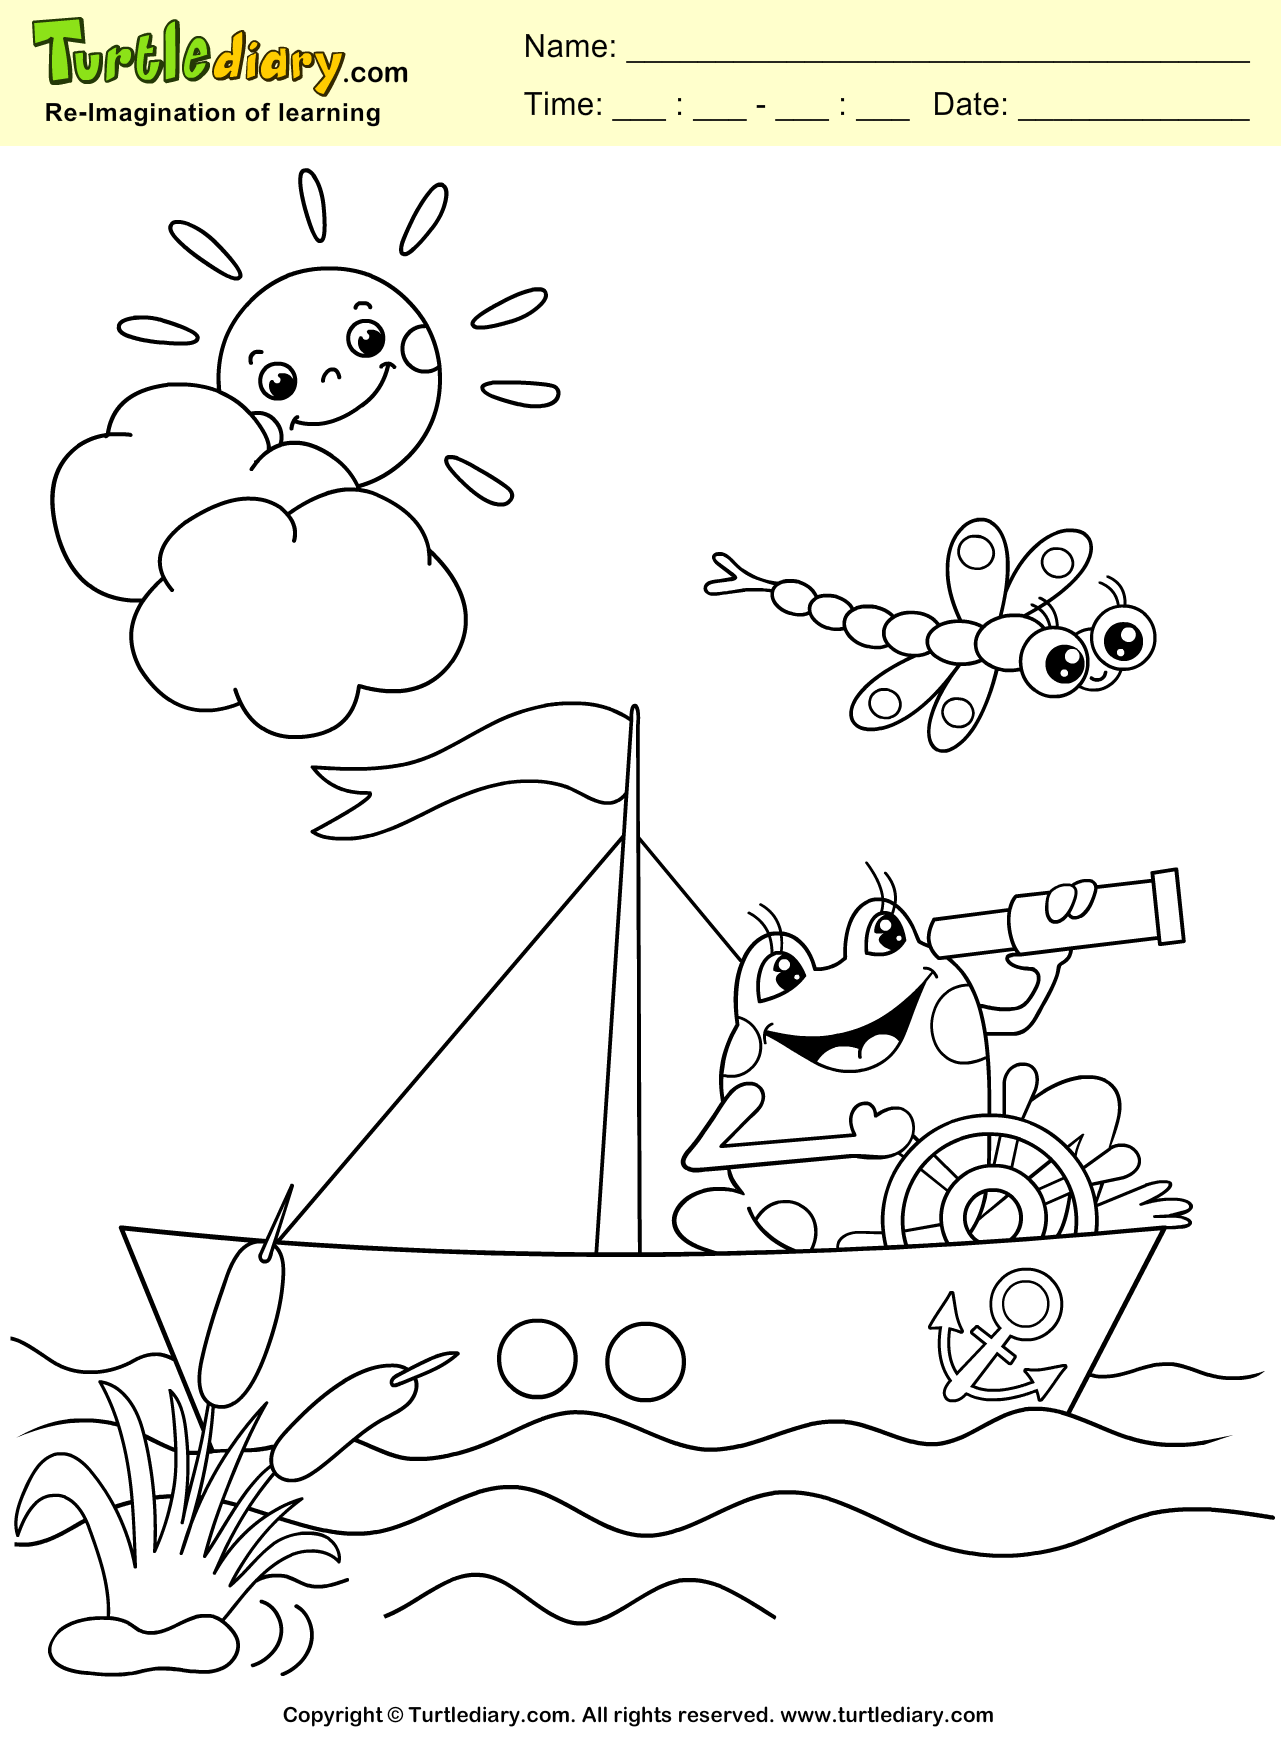 Frog and Boat Coloring Sheet | Turtle Diary